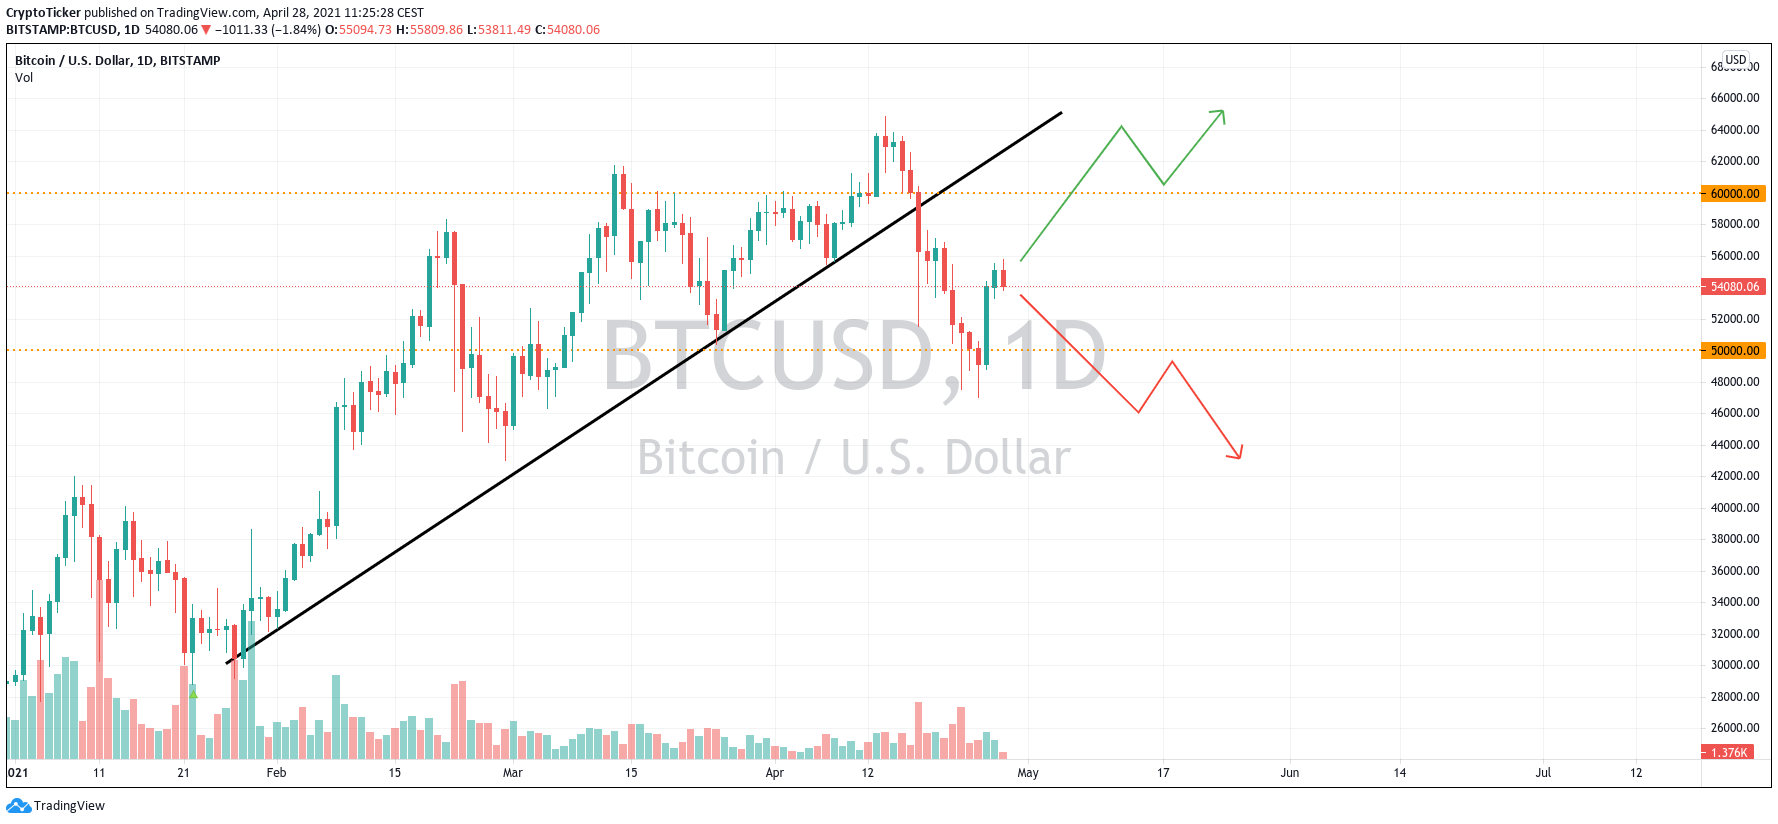 BTC/USD 1-day chart showing two potential case scenarios